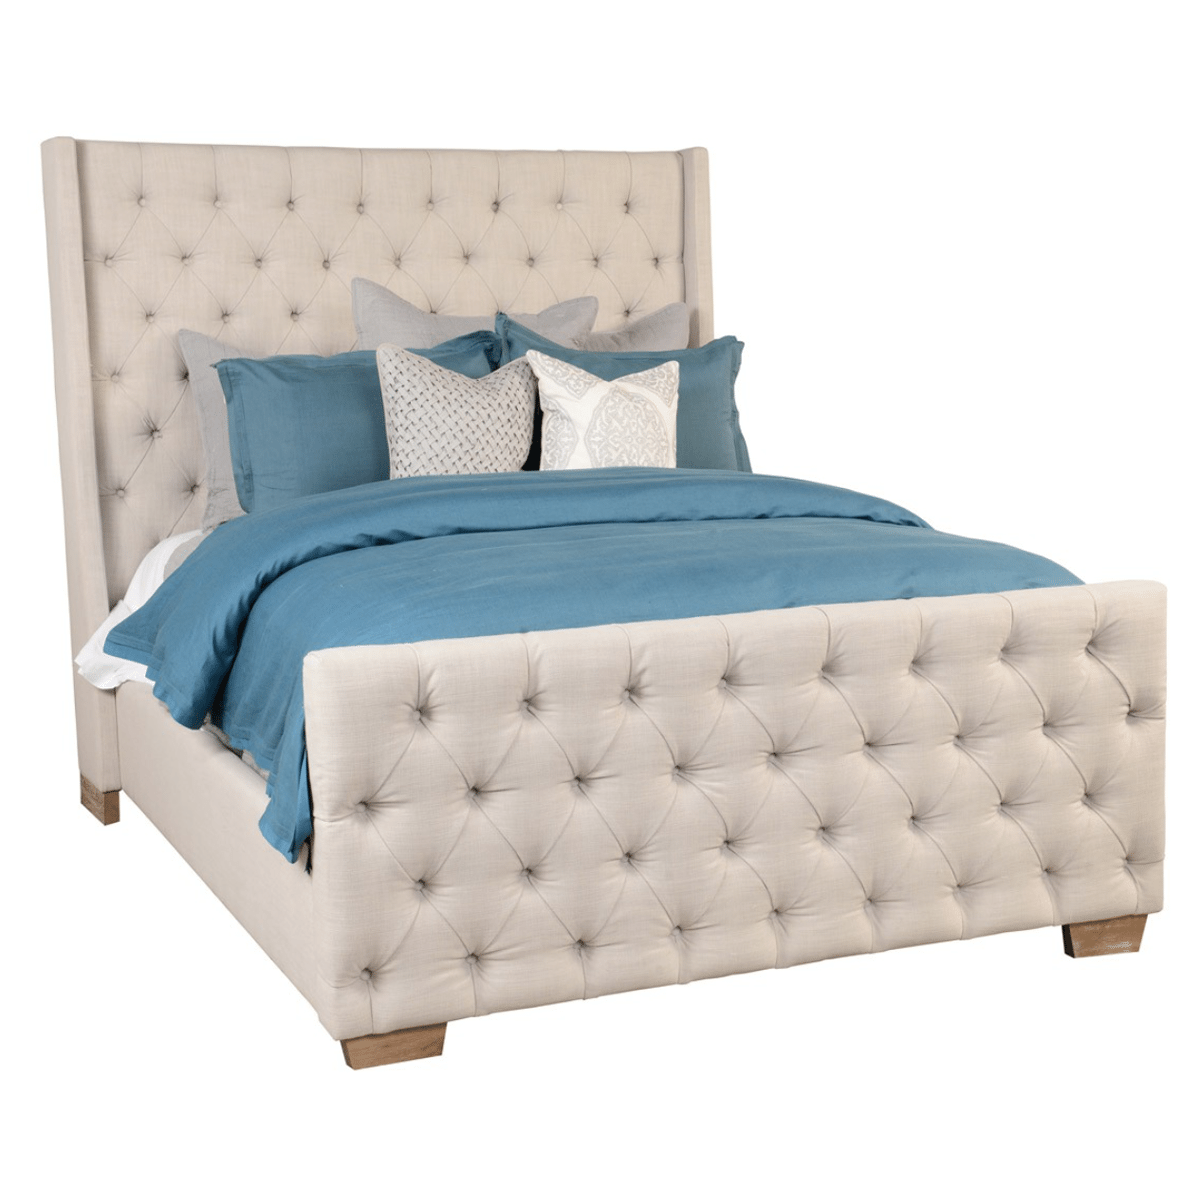 laurent-bed-queen-1-shopceladon